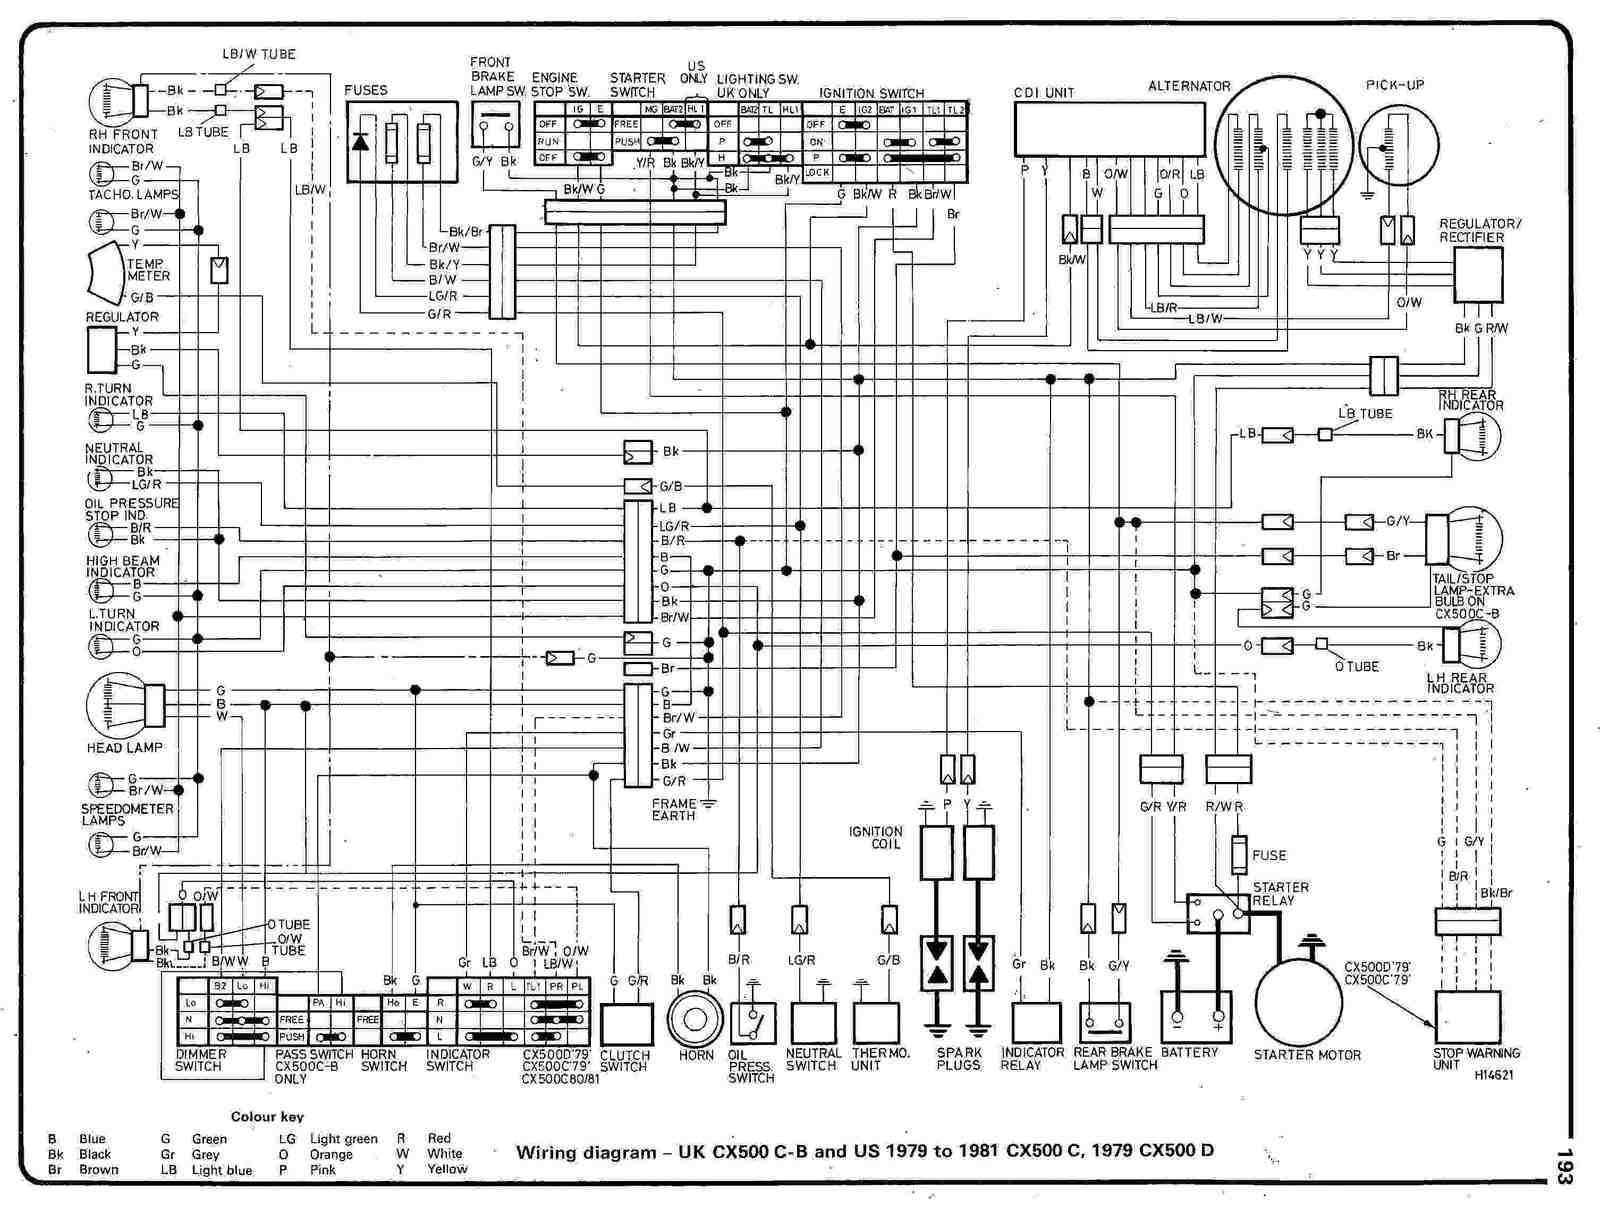 Wiring Diagram 1981 Prelude Page 3 And Schematics 1993 Honda Goldwing 1976 Gl1000 Trusted Schematic Diagrams U2022 Rh Sarome Co Rebel